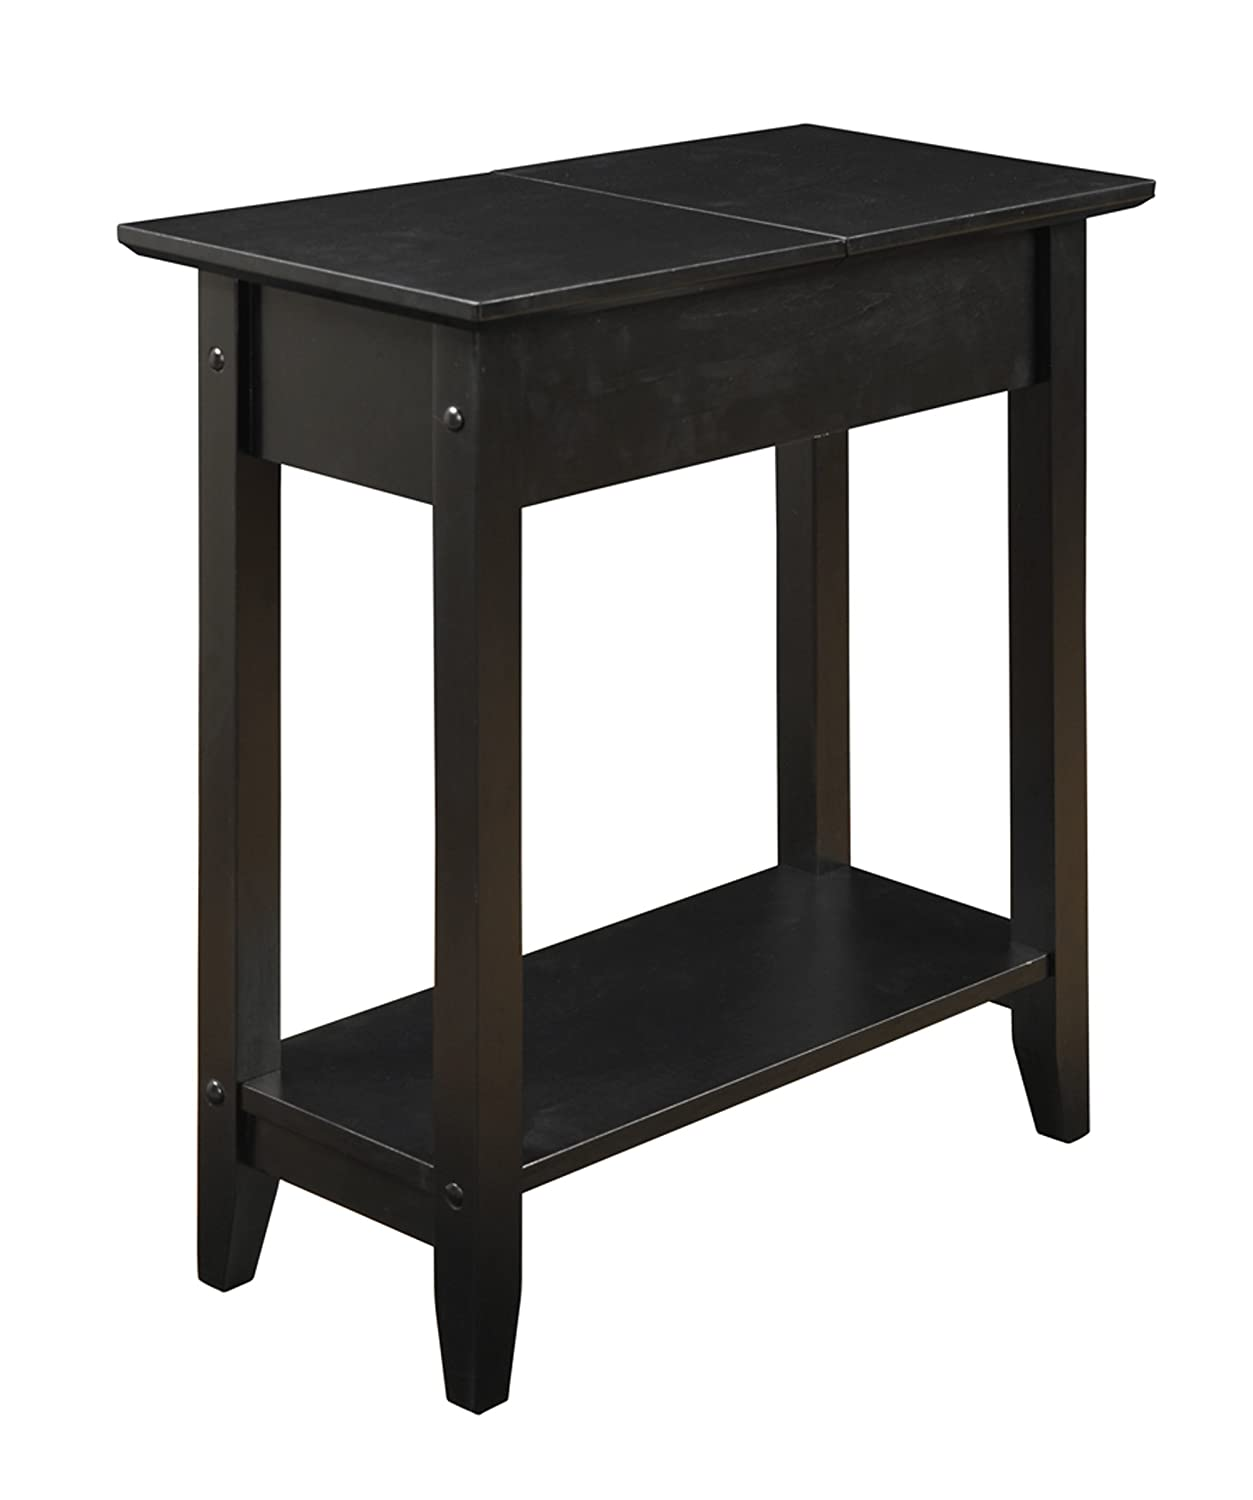 Amazon round side table - Amazon Com Convenience Concepts American Heritage Flip Top End Table Black Kitchen Dining